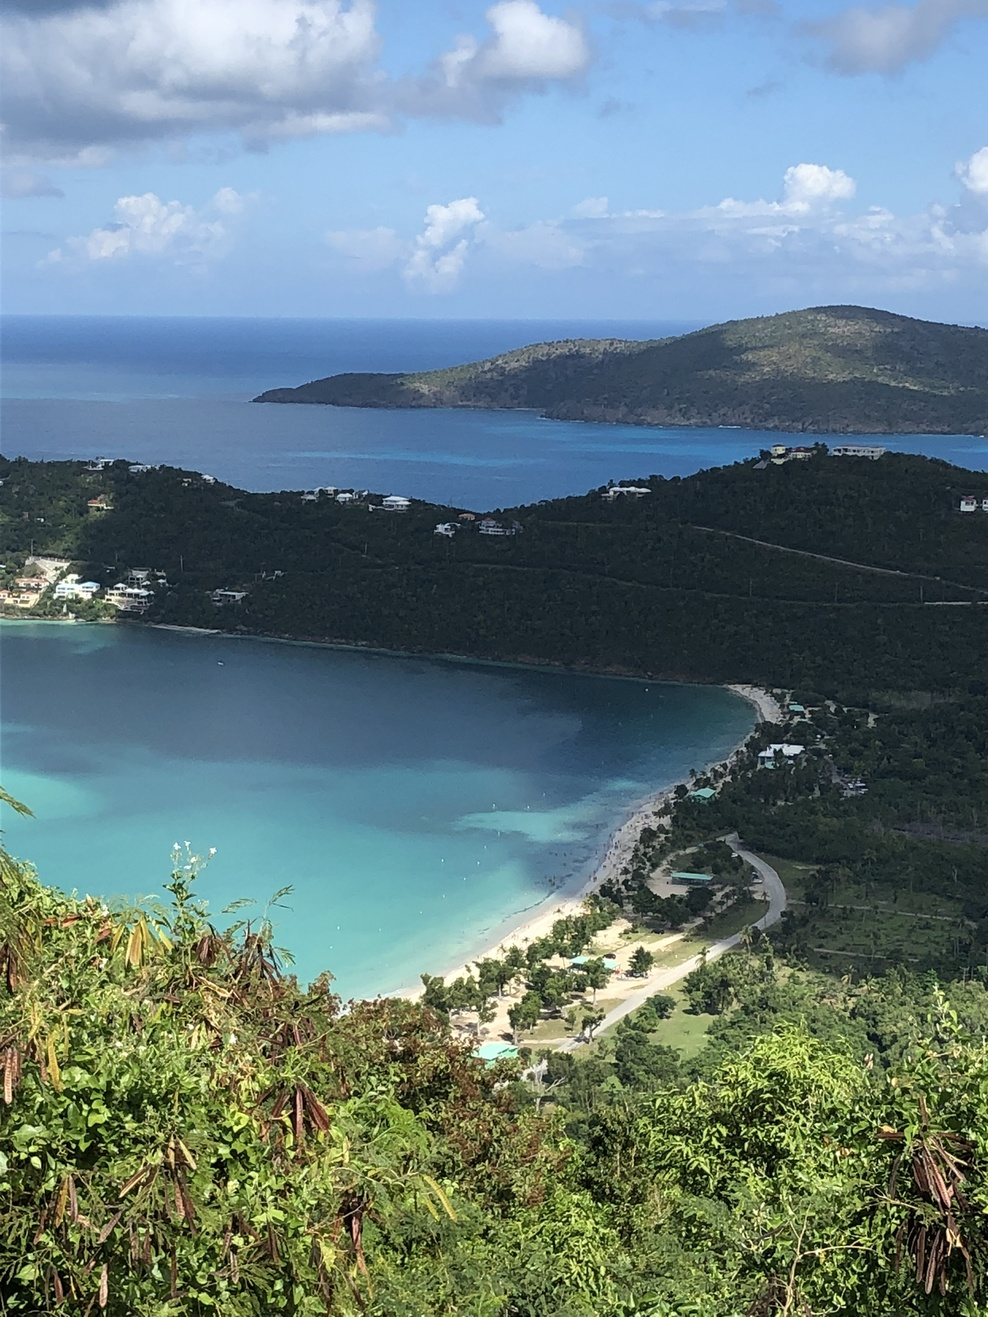 View of beaches from high up island.